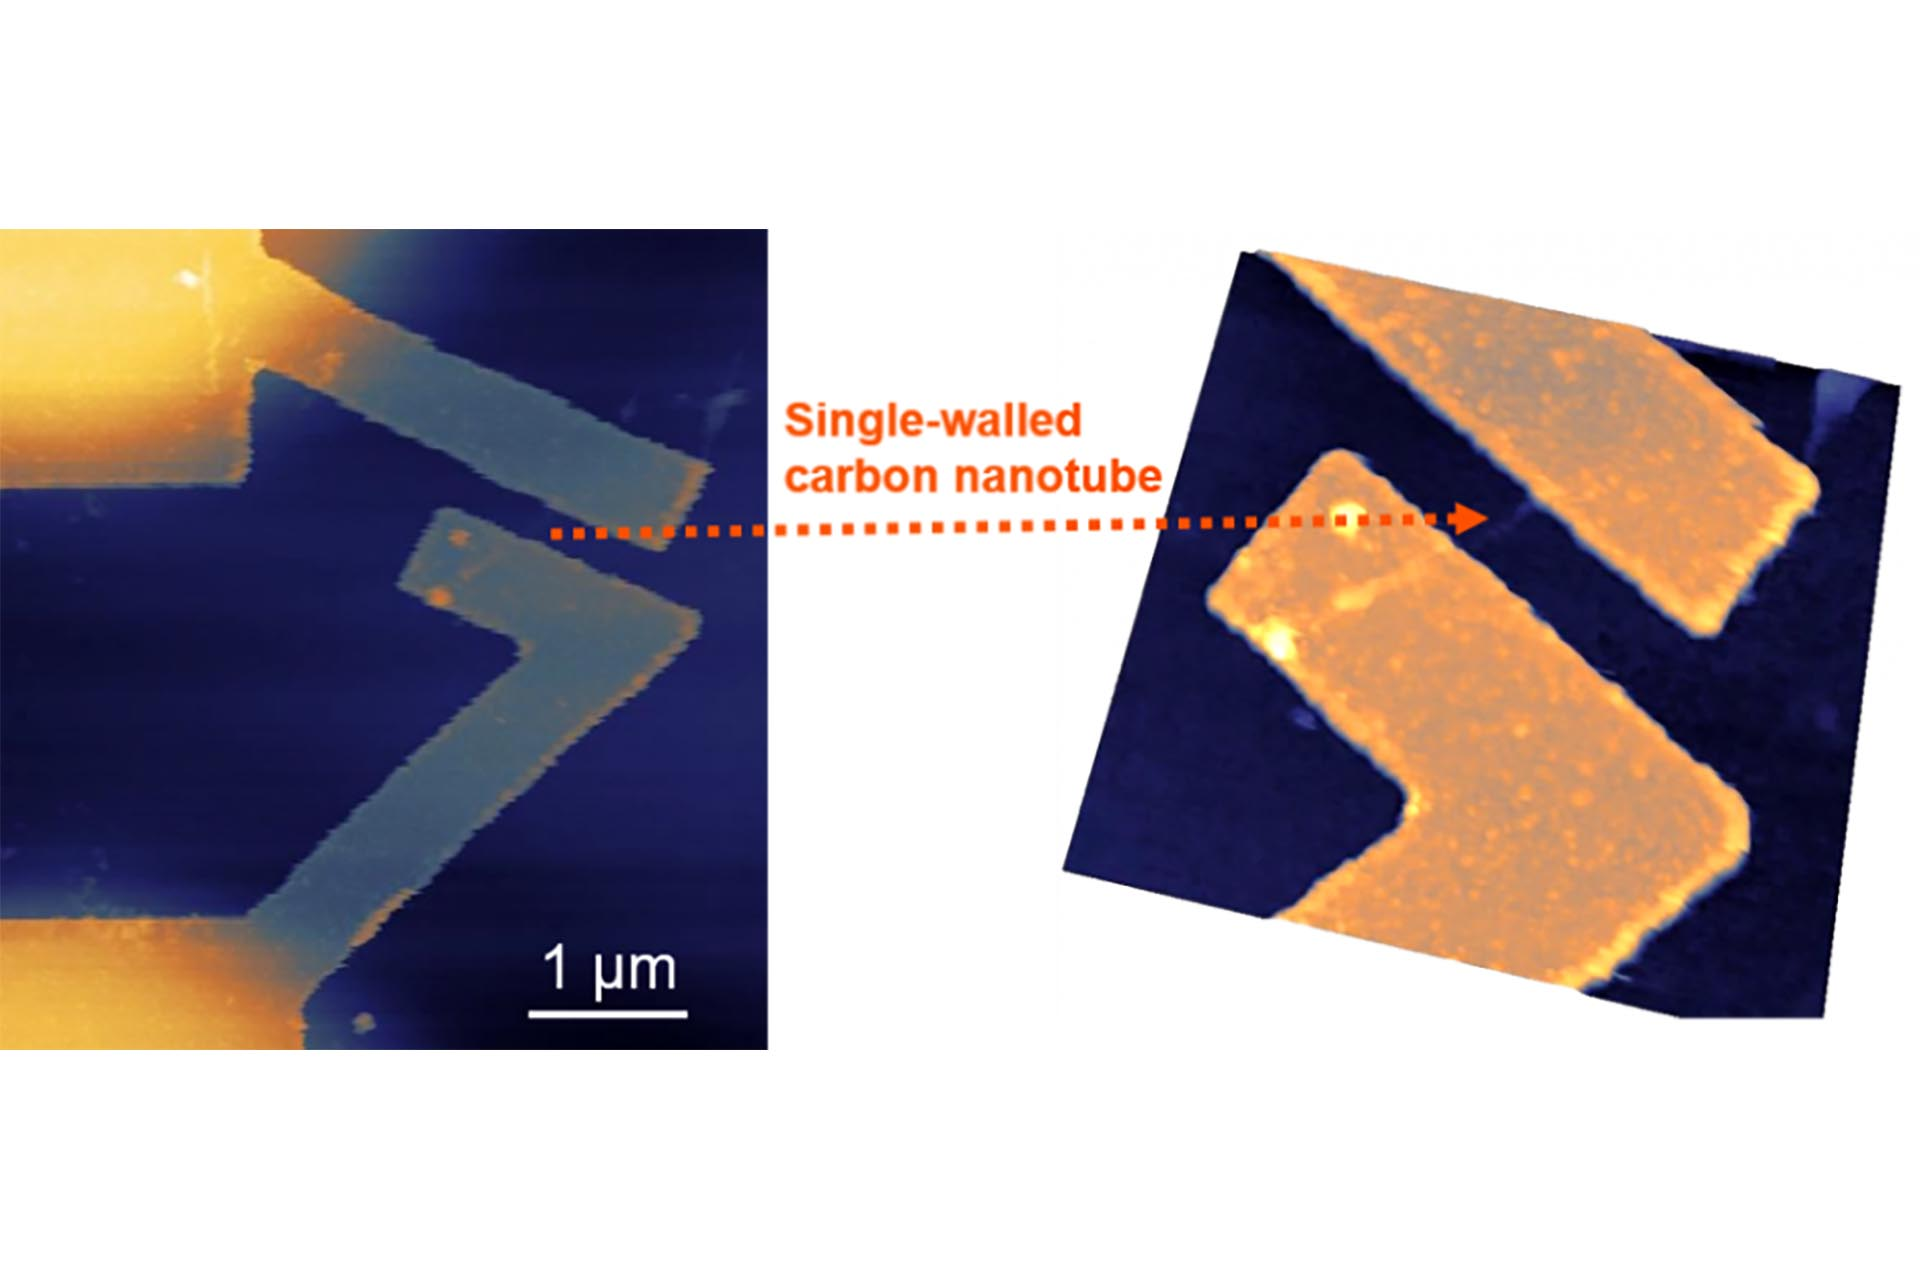 Contacts to single-walled carbon nanotubes (SWNTs) using NanoFrazor lithography. (Courtesy of Prof. Tai-Cheng Lee, NTU, Taiwan)